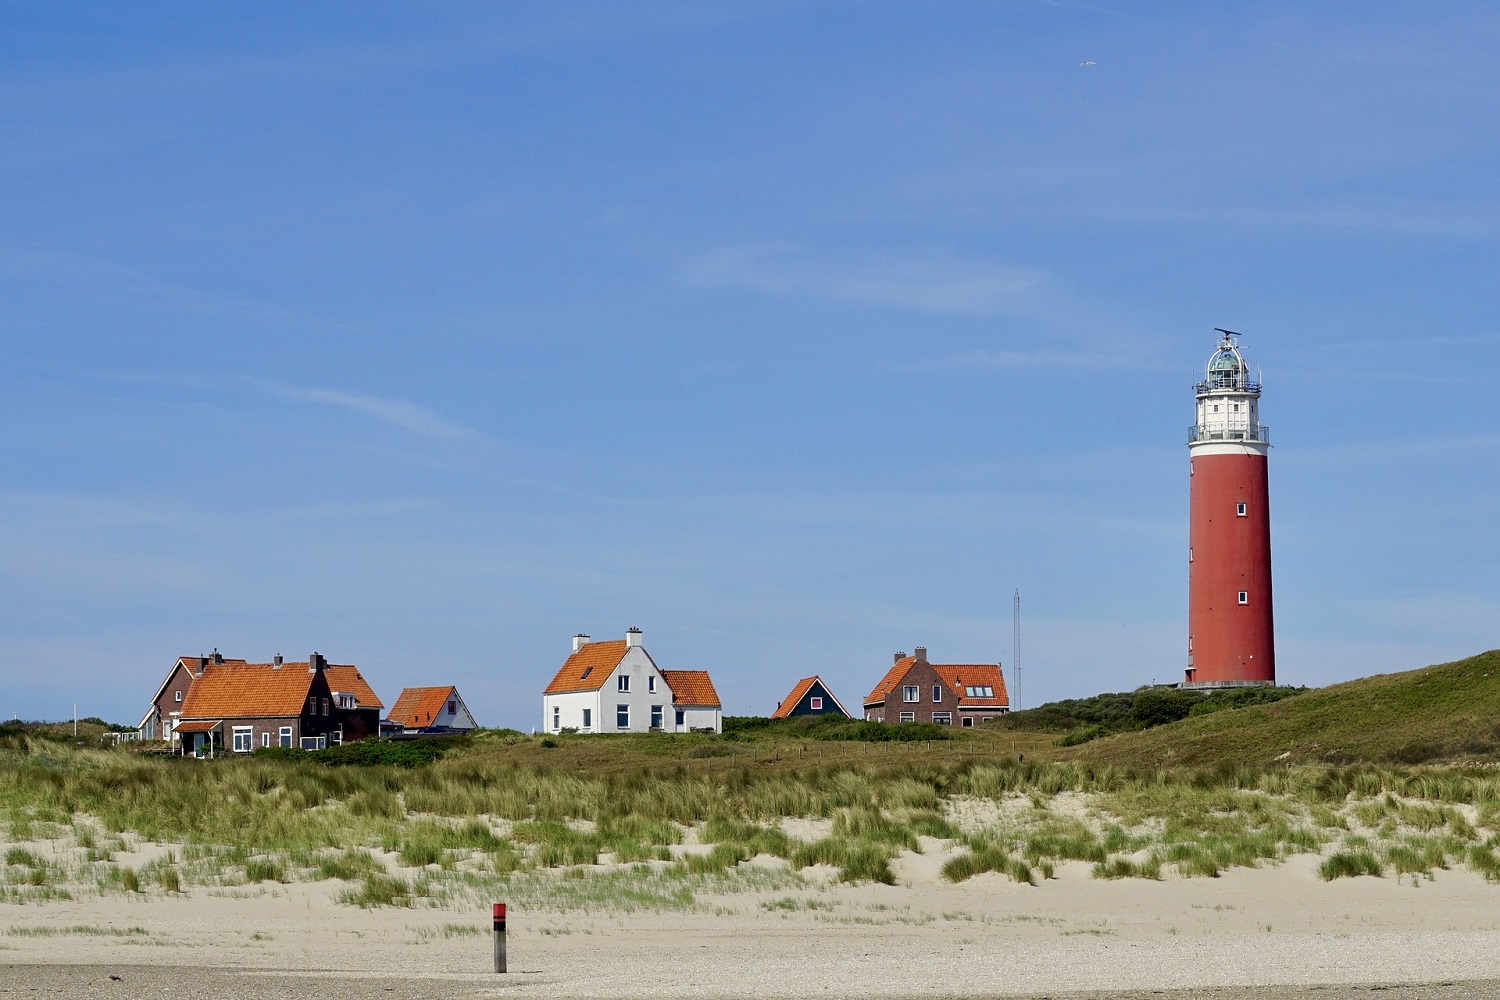 Ameland or Texel holiday